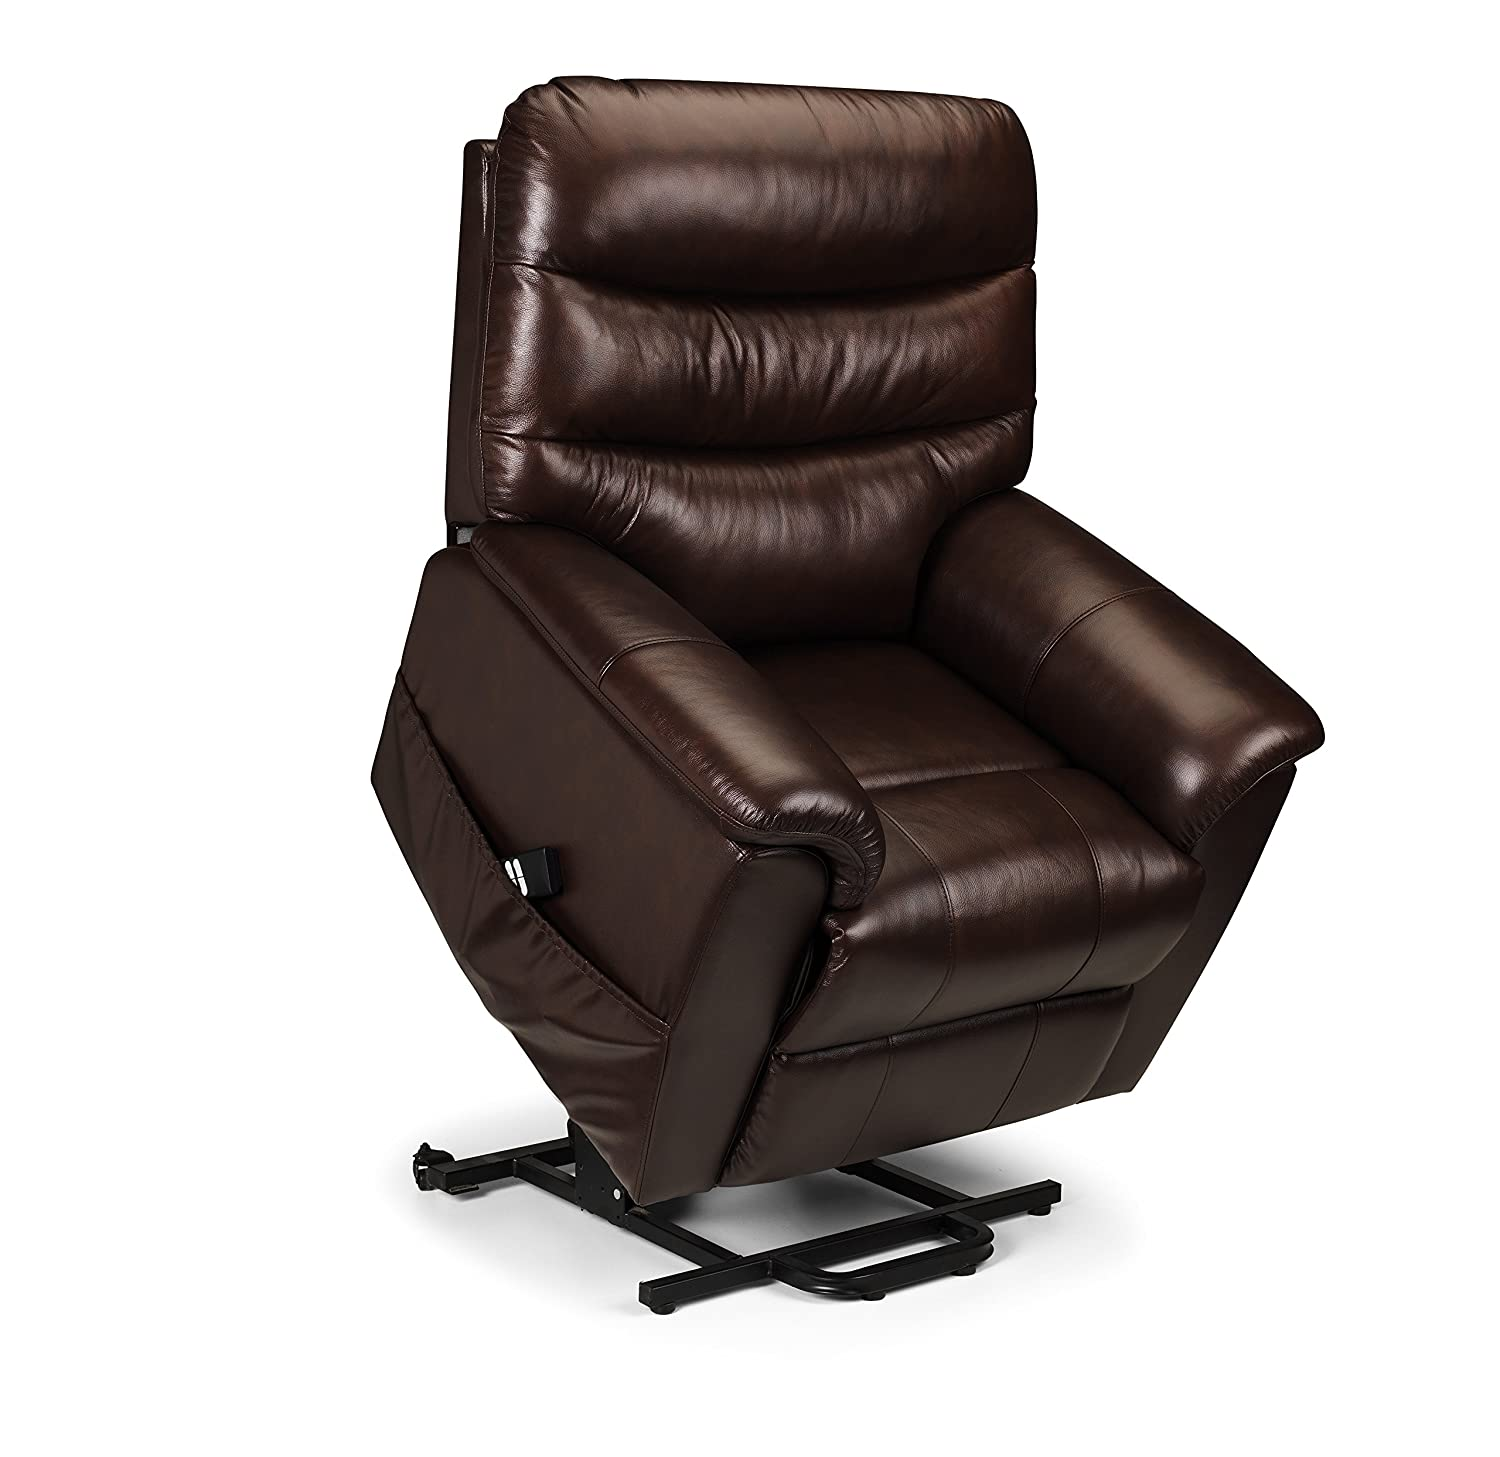 Julian Bowen Pullman Leather Dual Motor Rise and Recline Chair Chestnut Brown Amazon.co.uk Kitchen u0026 Home  sc 1 st  Amazon UK & Julian Bowen Pullman Leather Dual Motor Rise and Recline Chair ... islam-shia.org